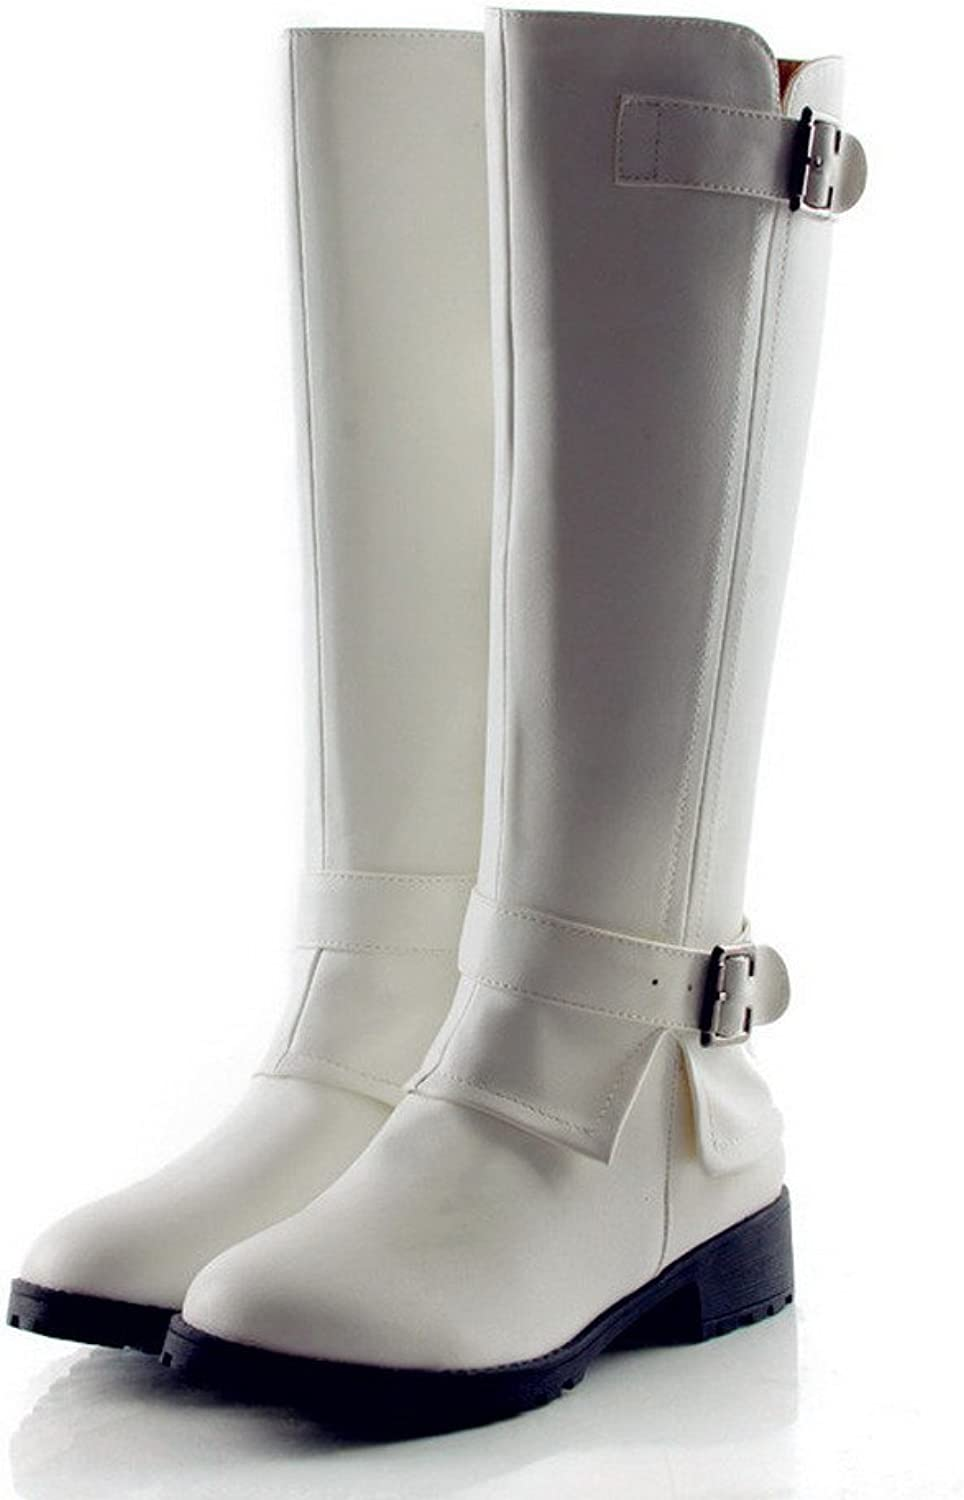 QueenFashion Women's Close Round Toe Adjustable Strap Square Heels PU Knee Boots with Zipper and Buckle